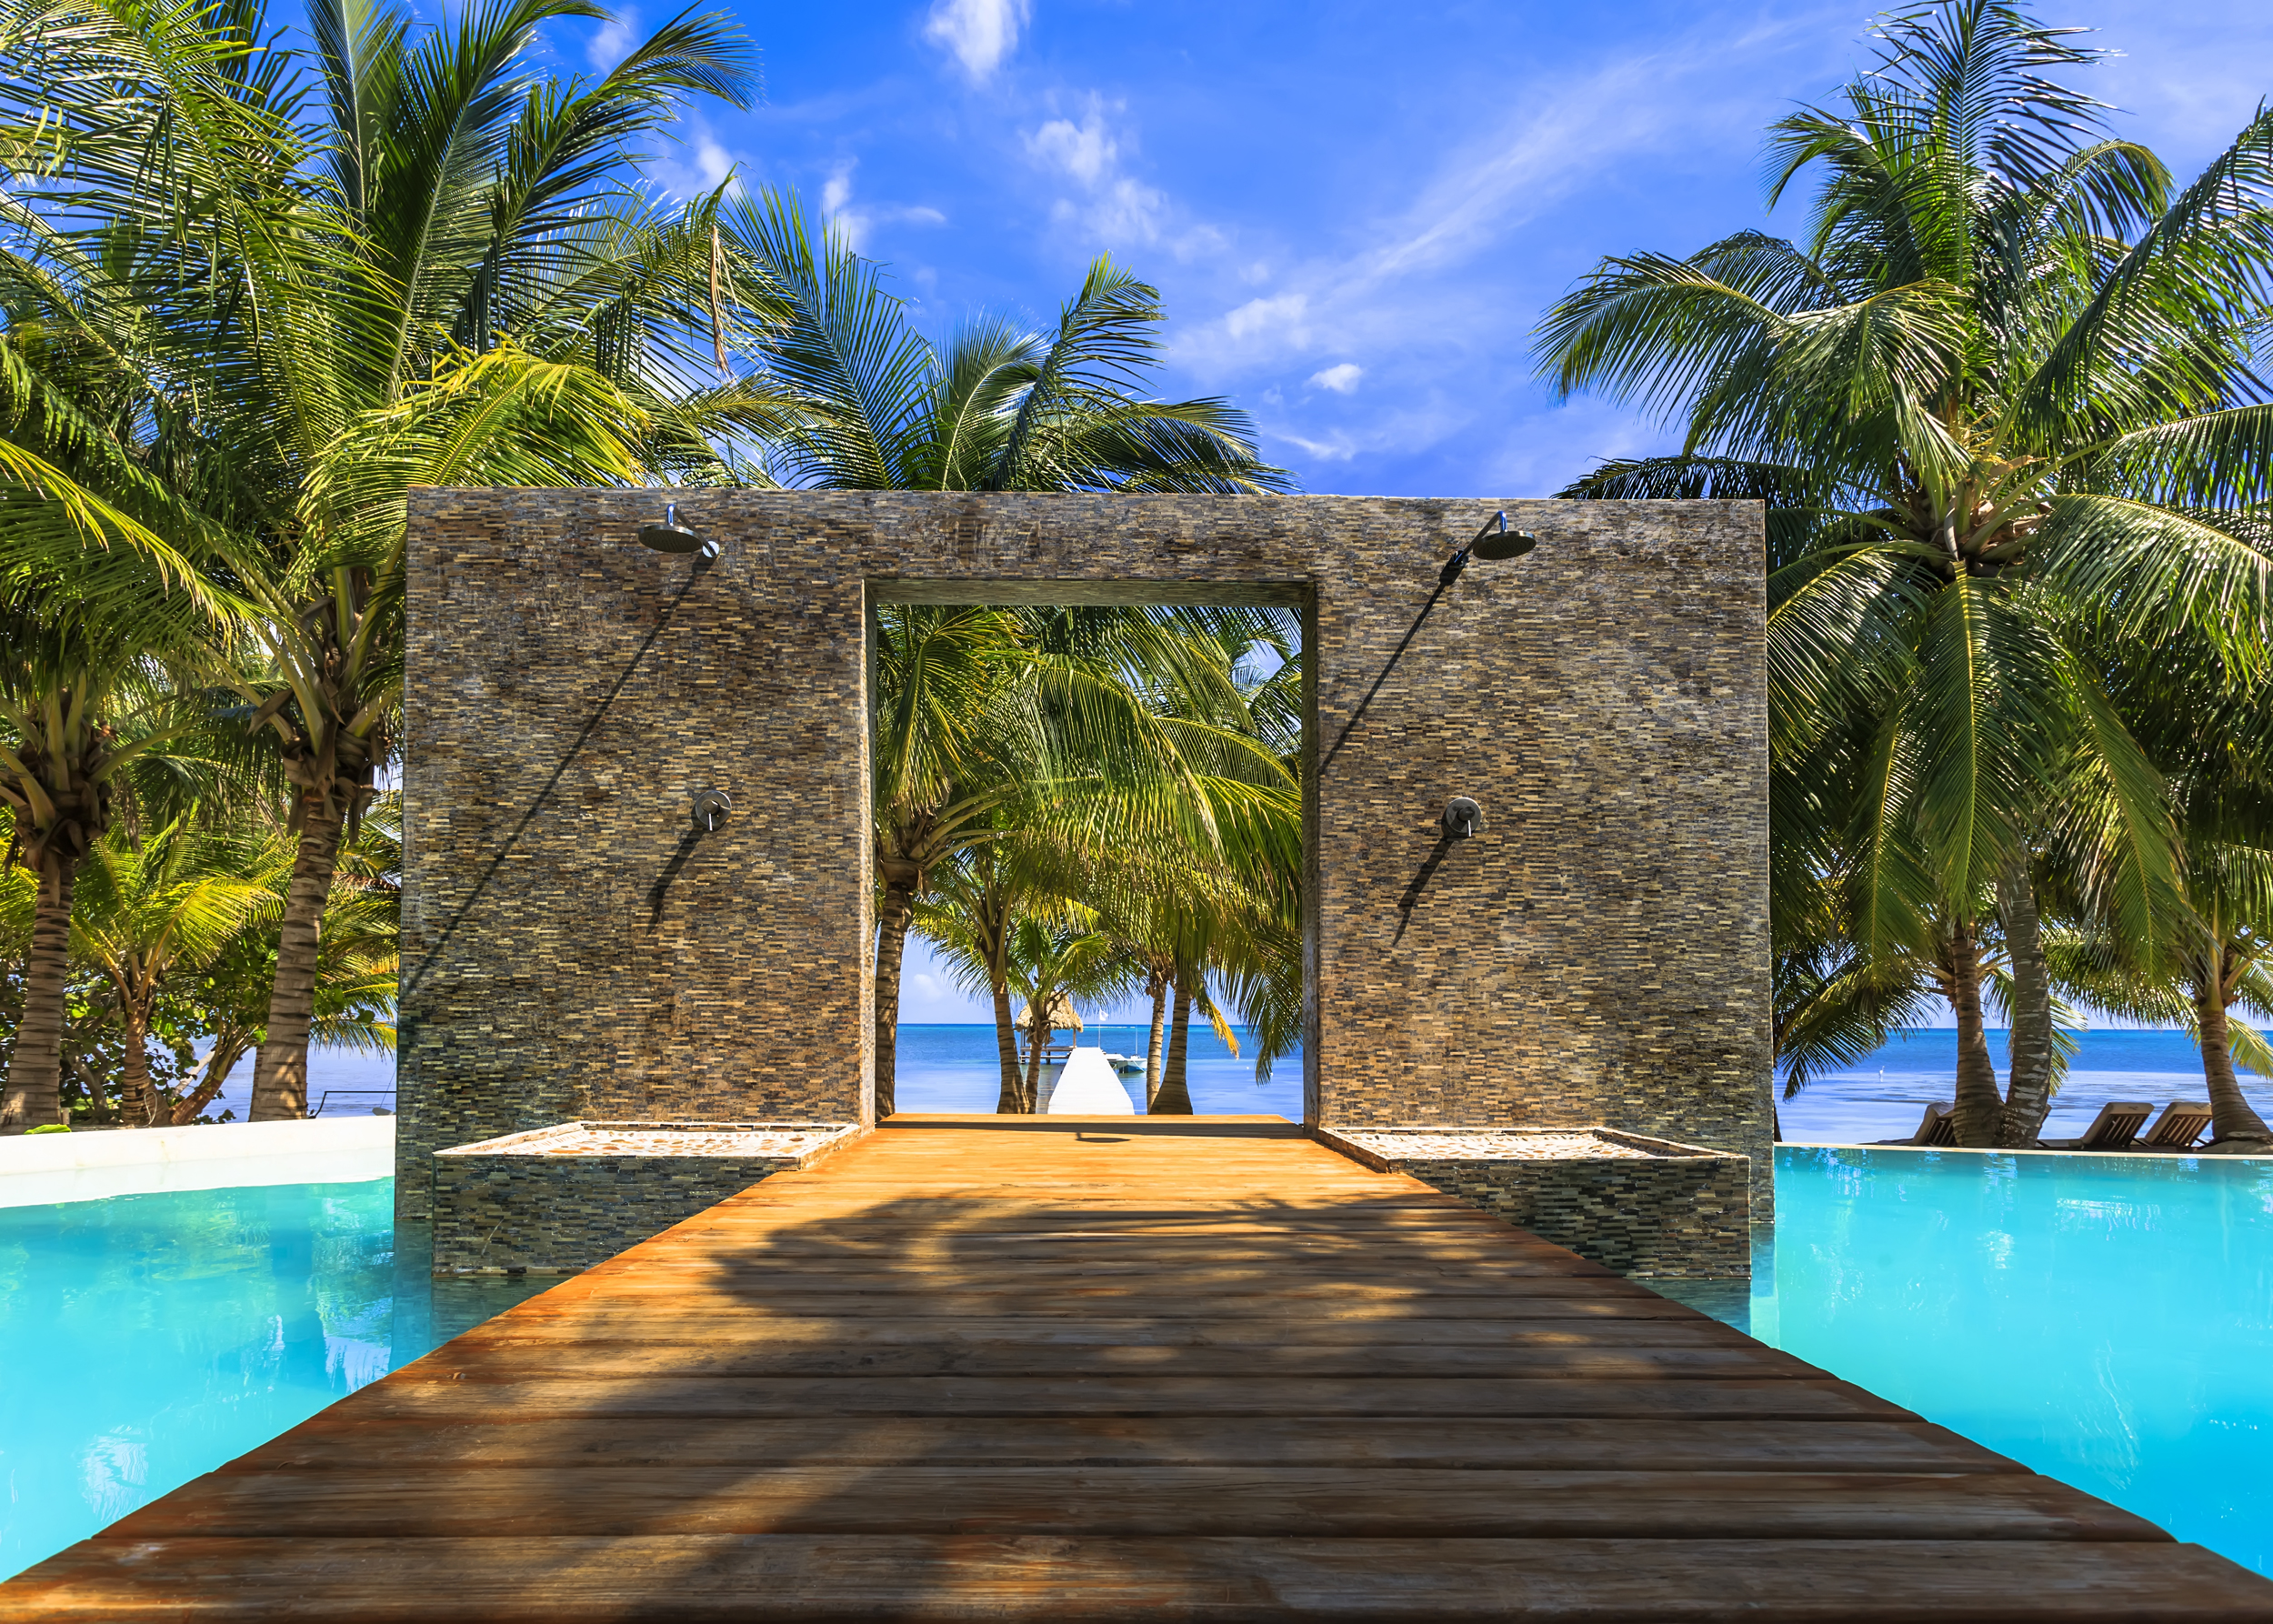 Best Pools in the Caribbean